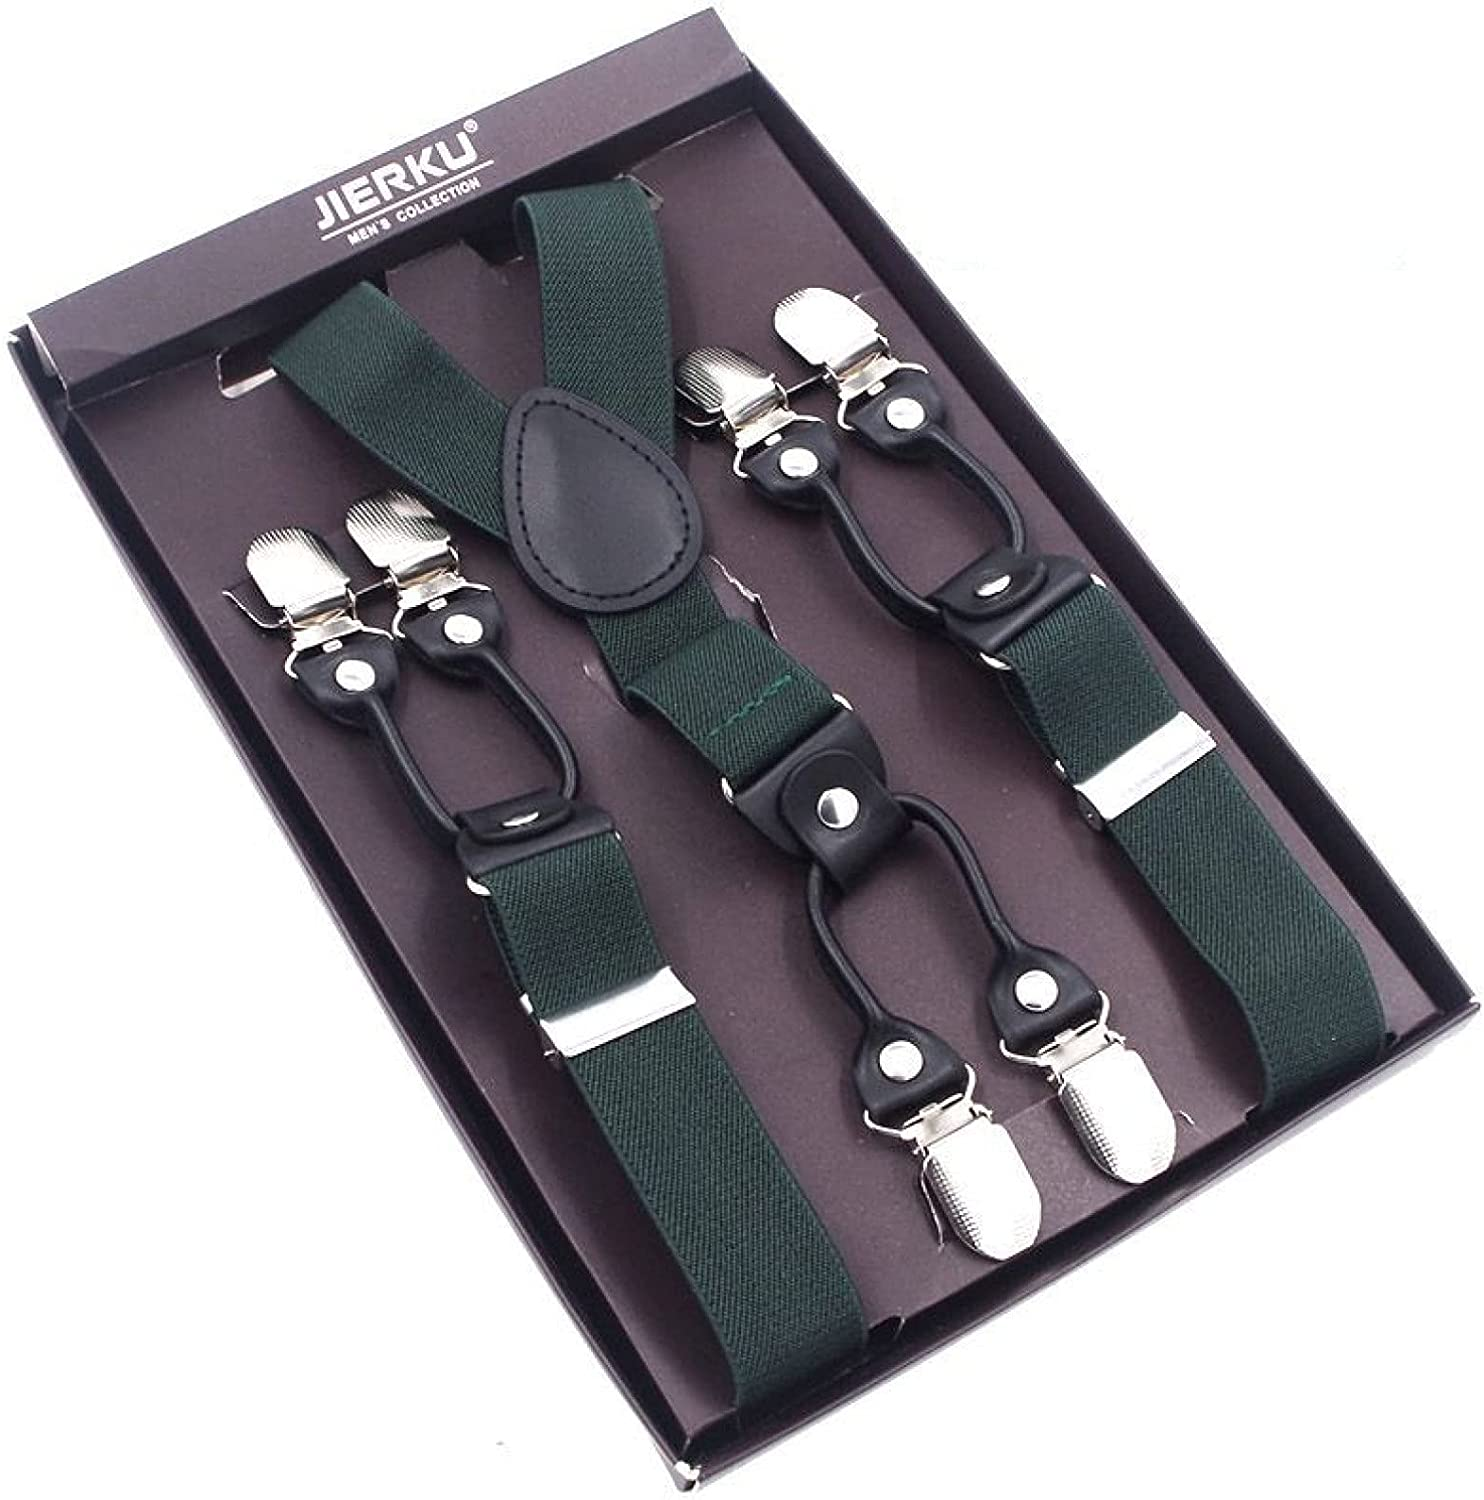 MASKUOY Suspenders Black Leather 6 Clips Braces Male Vintage Casual Trousers Strap Father/Husband's Gift 2.5120Cm